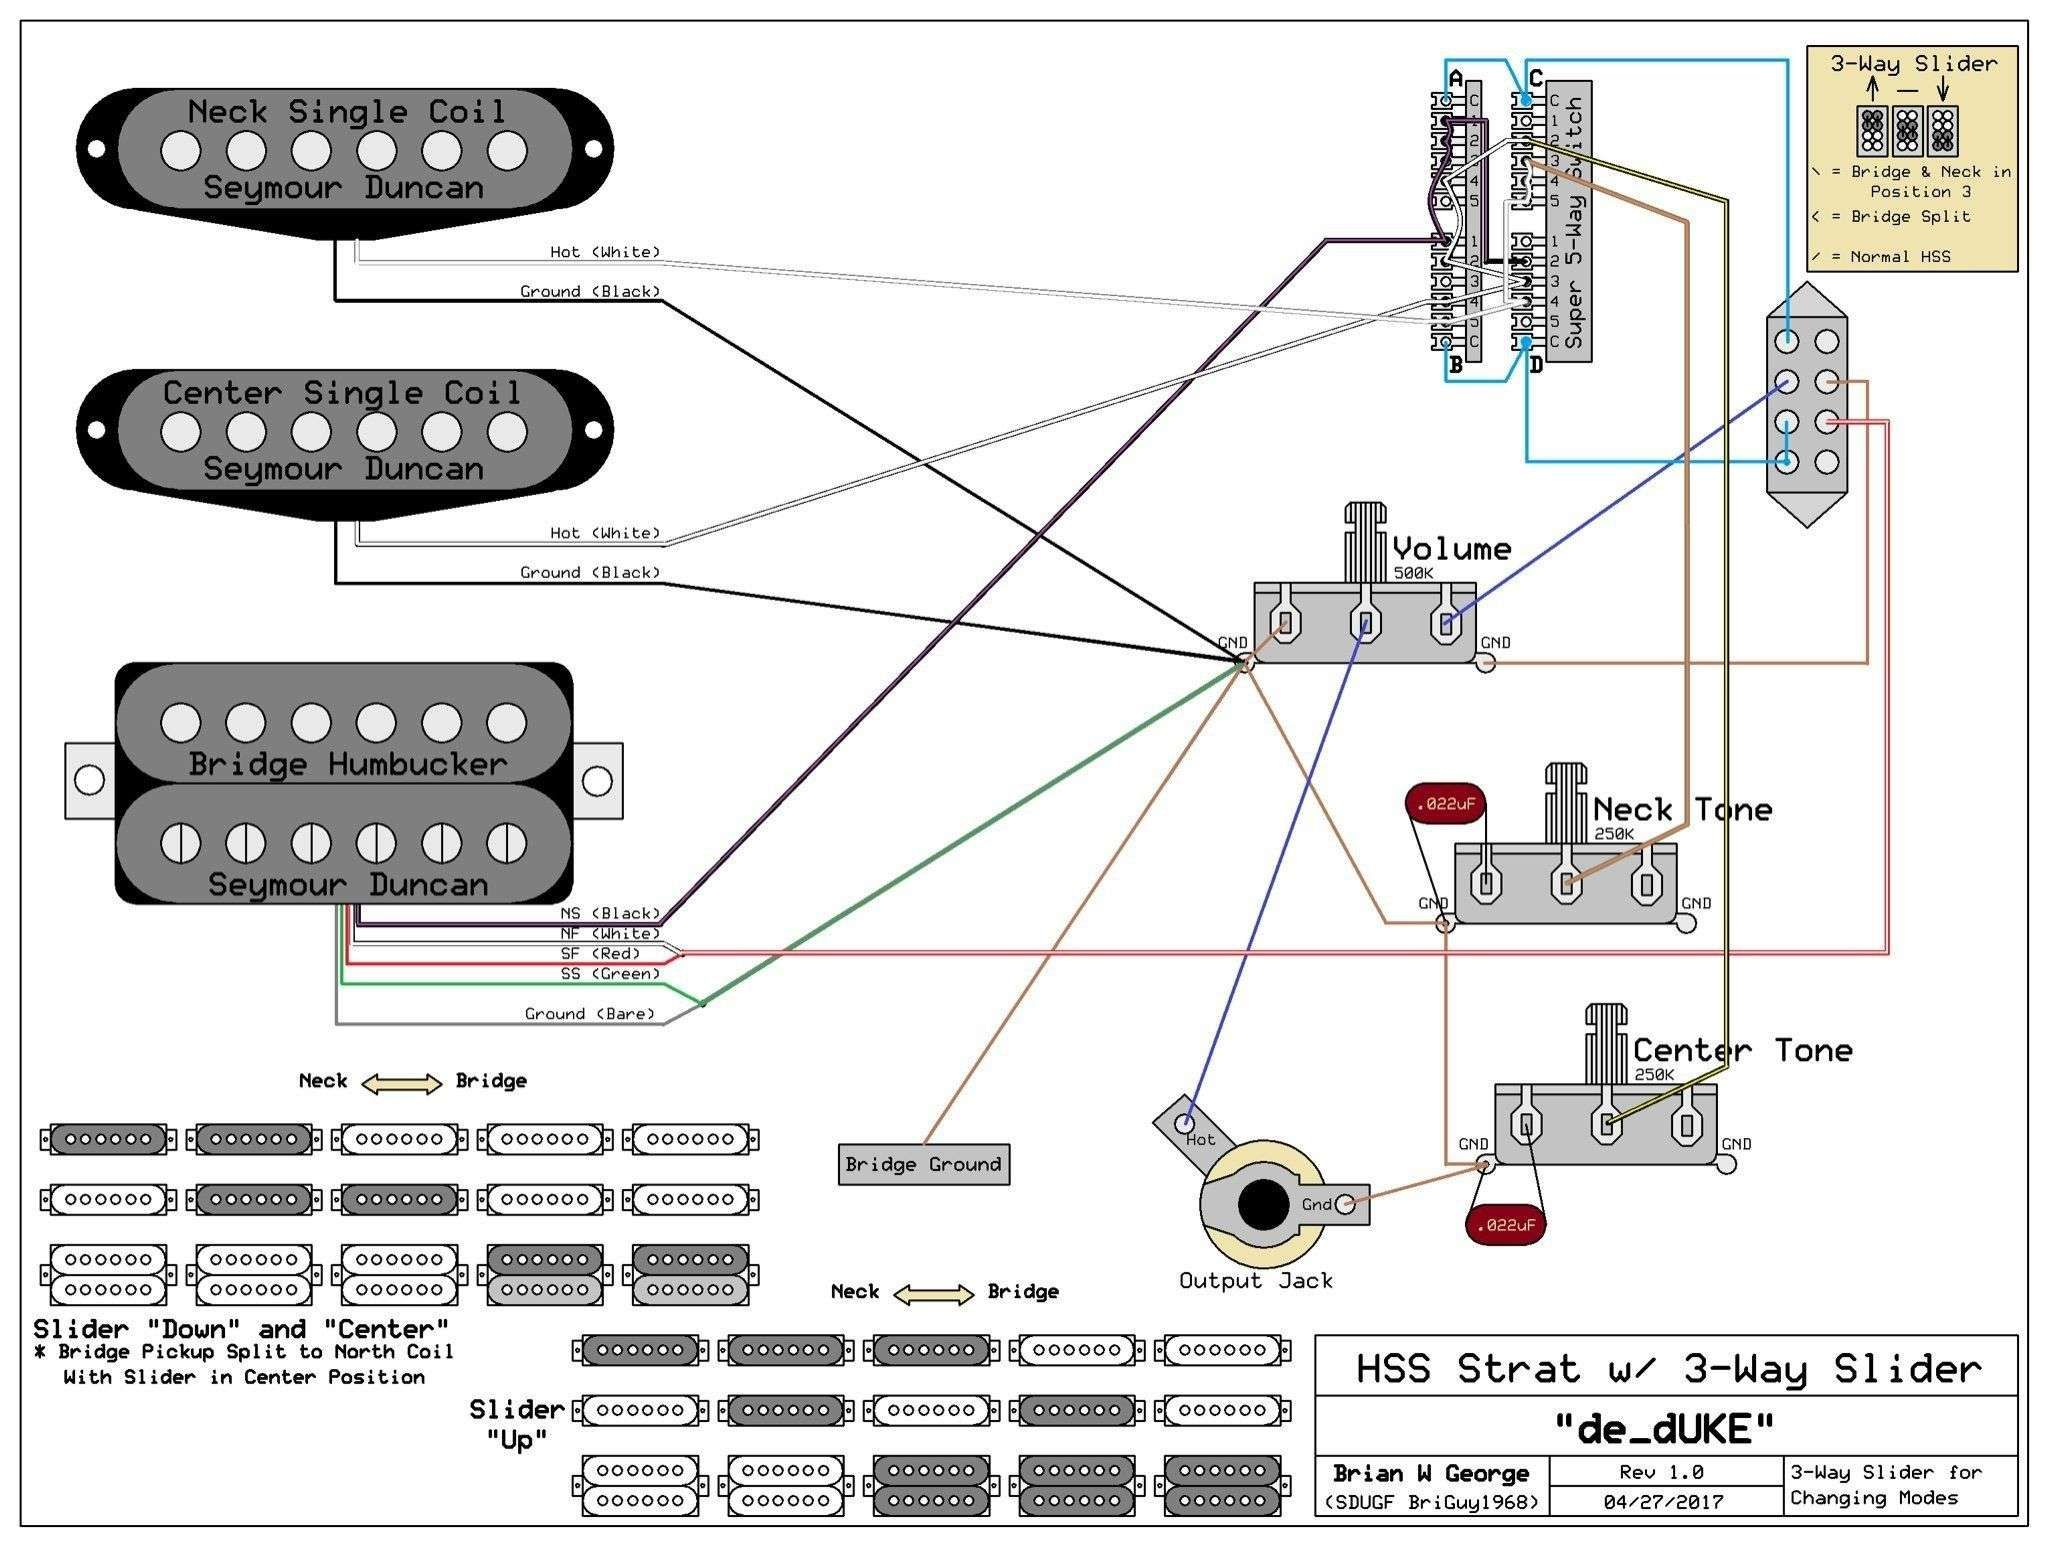 medium resolution of wiring diagram 3 way switch elegant wiring diagrams for strat fresh wiring diagram guitar 3 way switch